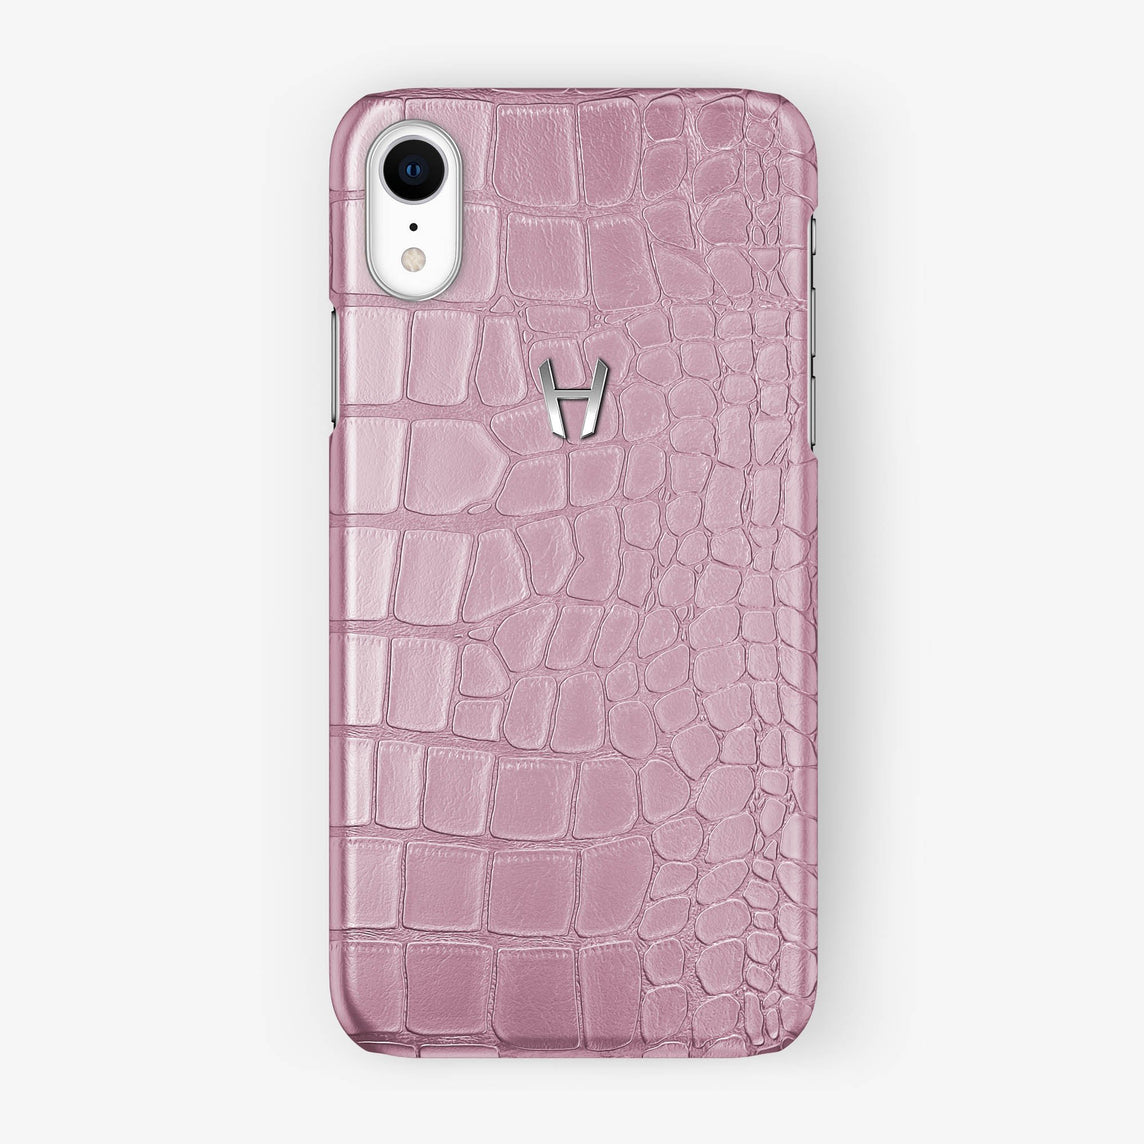 Alligator [iPhone Case] [model:iphone-xr-case] [colour:pink] [finishing:stainless-steel]